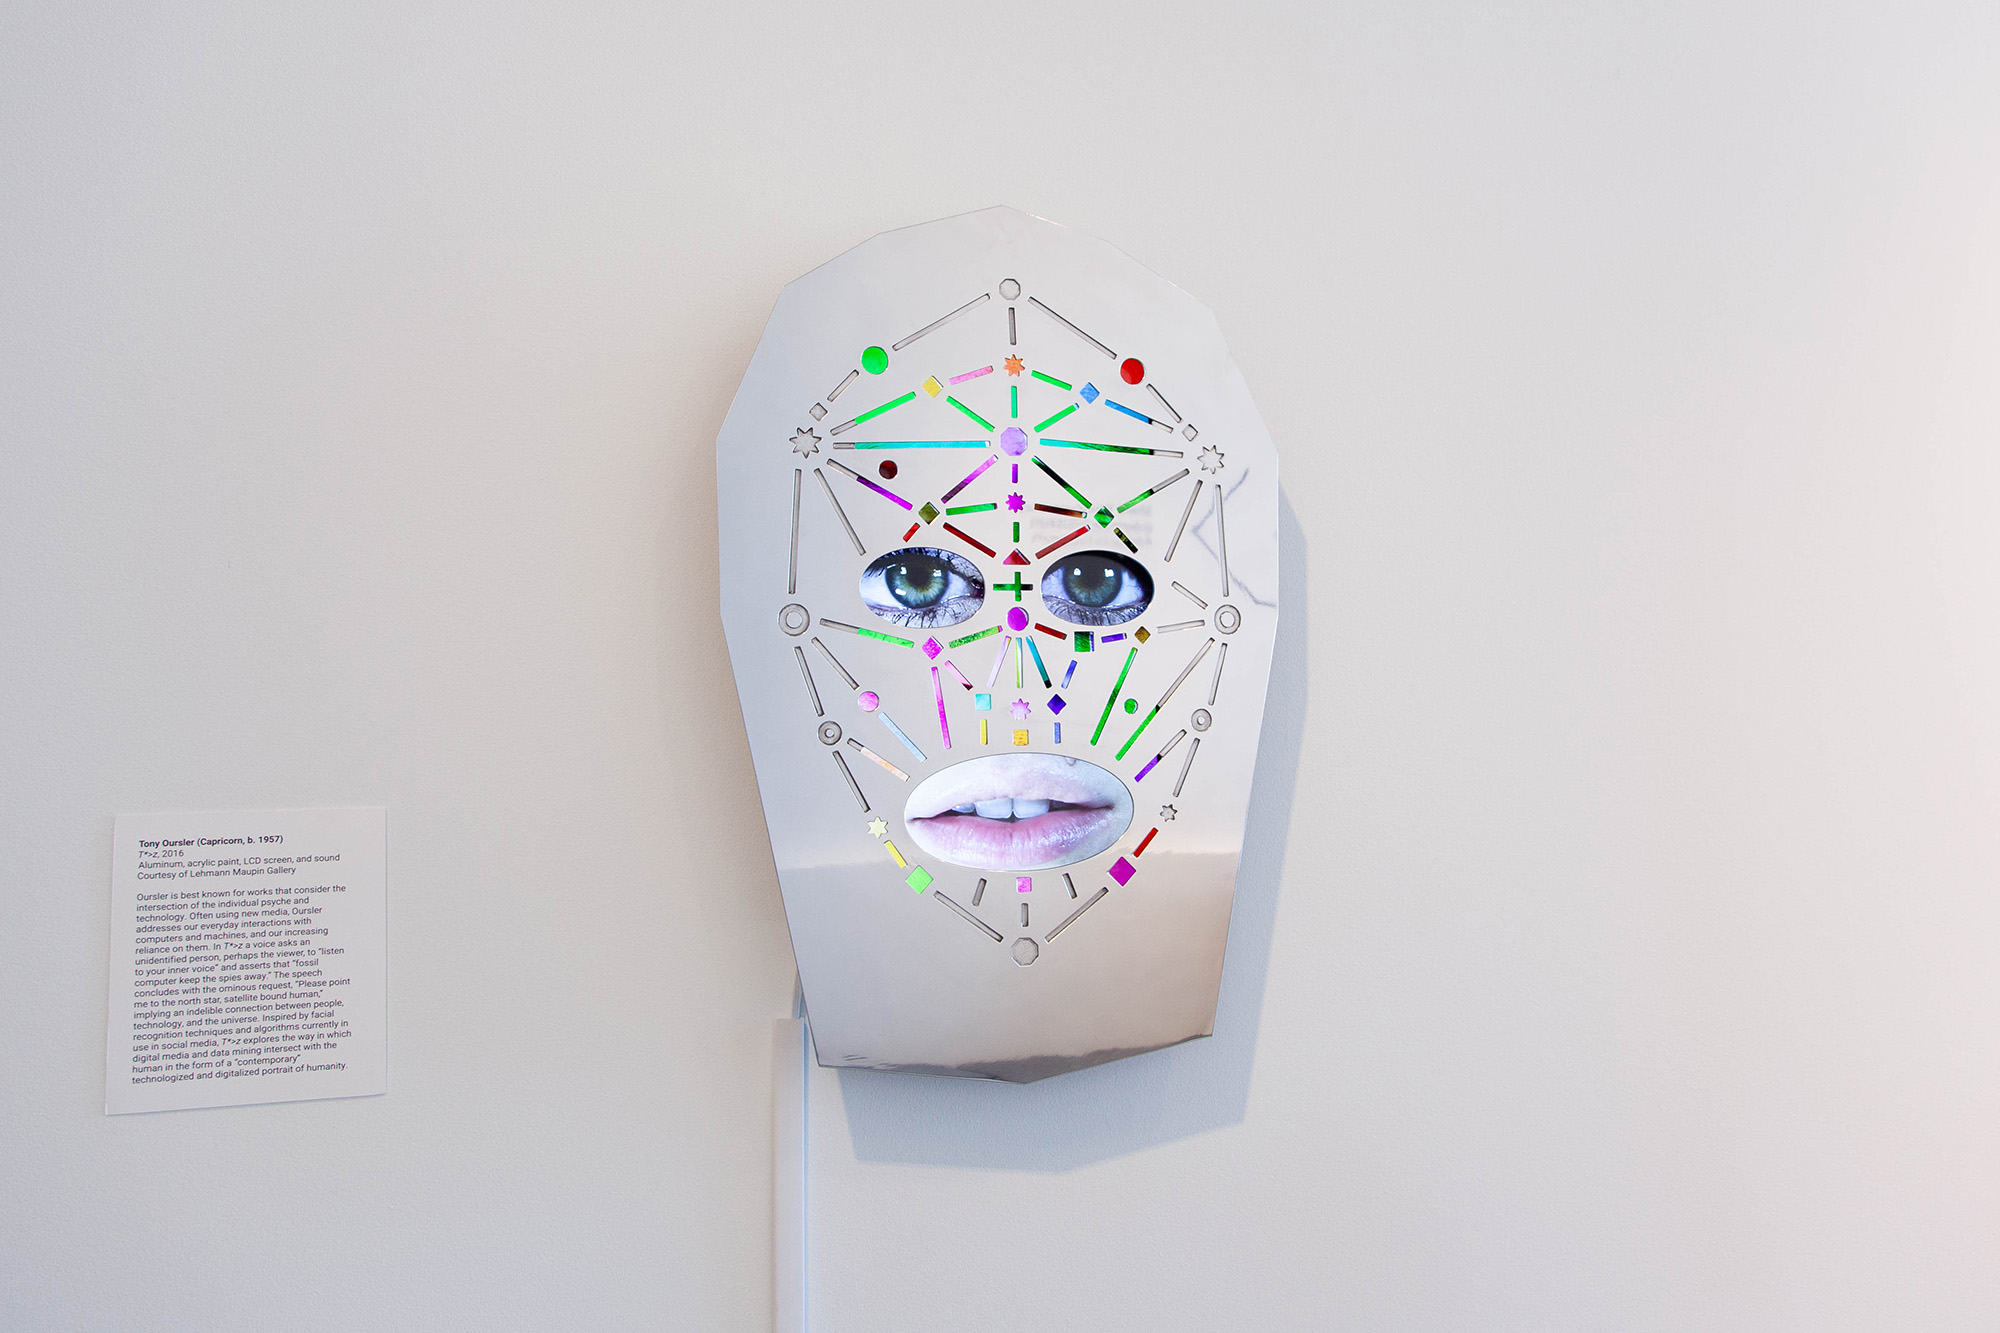 Tony Oursler, T*>z, 2016. Courtesy of Lehmann Maupin Gallery. Installation view in New Age, New Age: Strategies for Survival at DePaul Art Museum, 2019. Photo: DePaul Art Museum